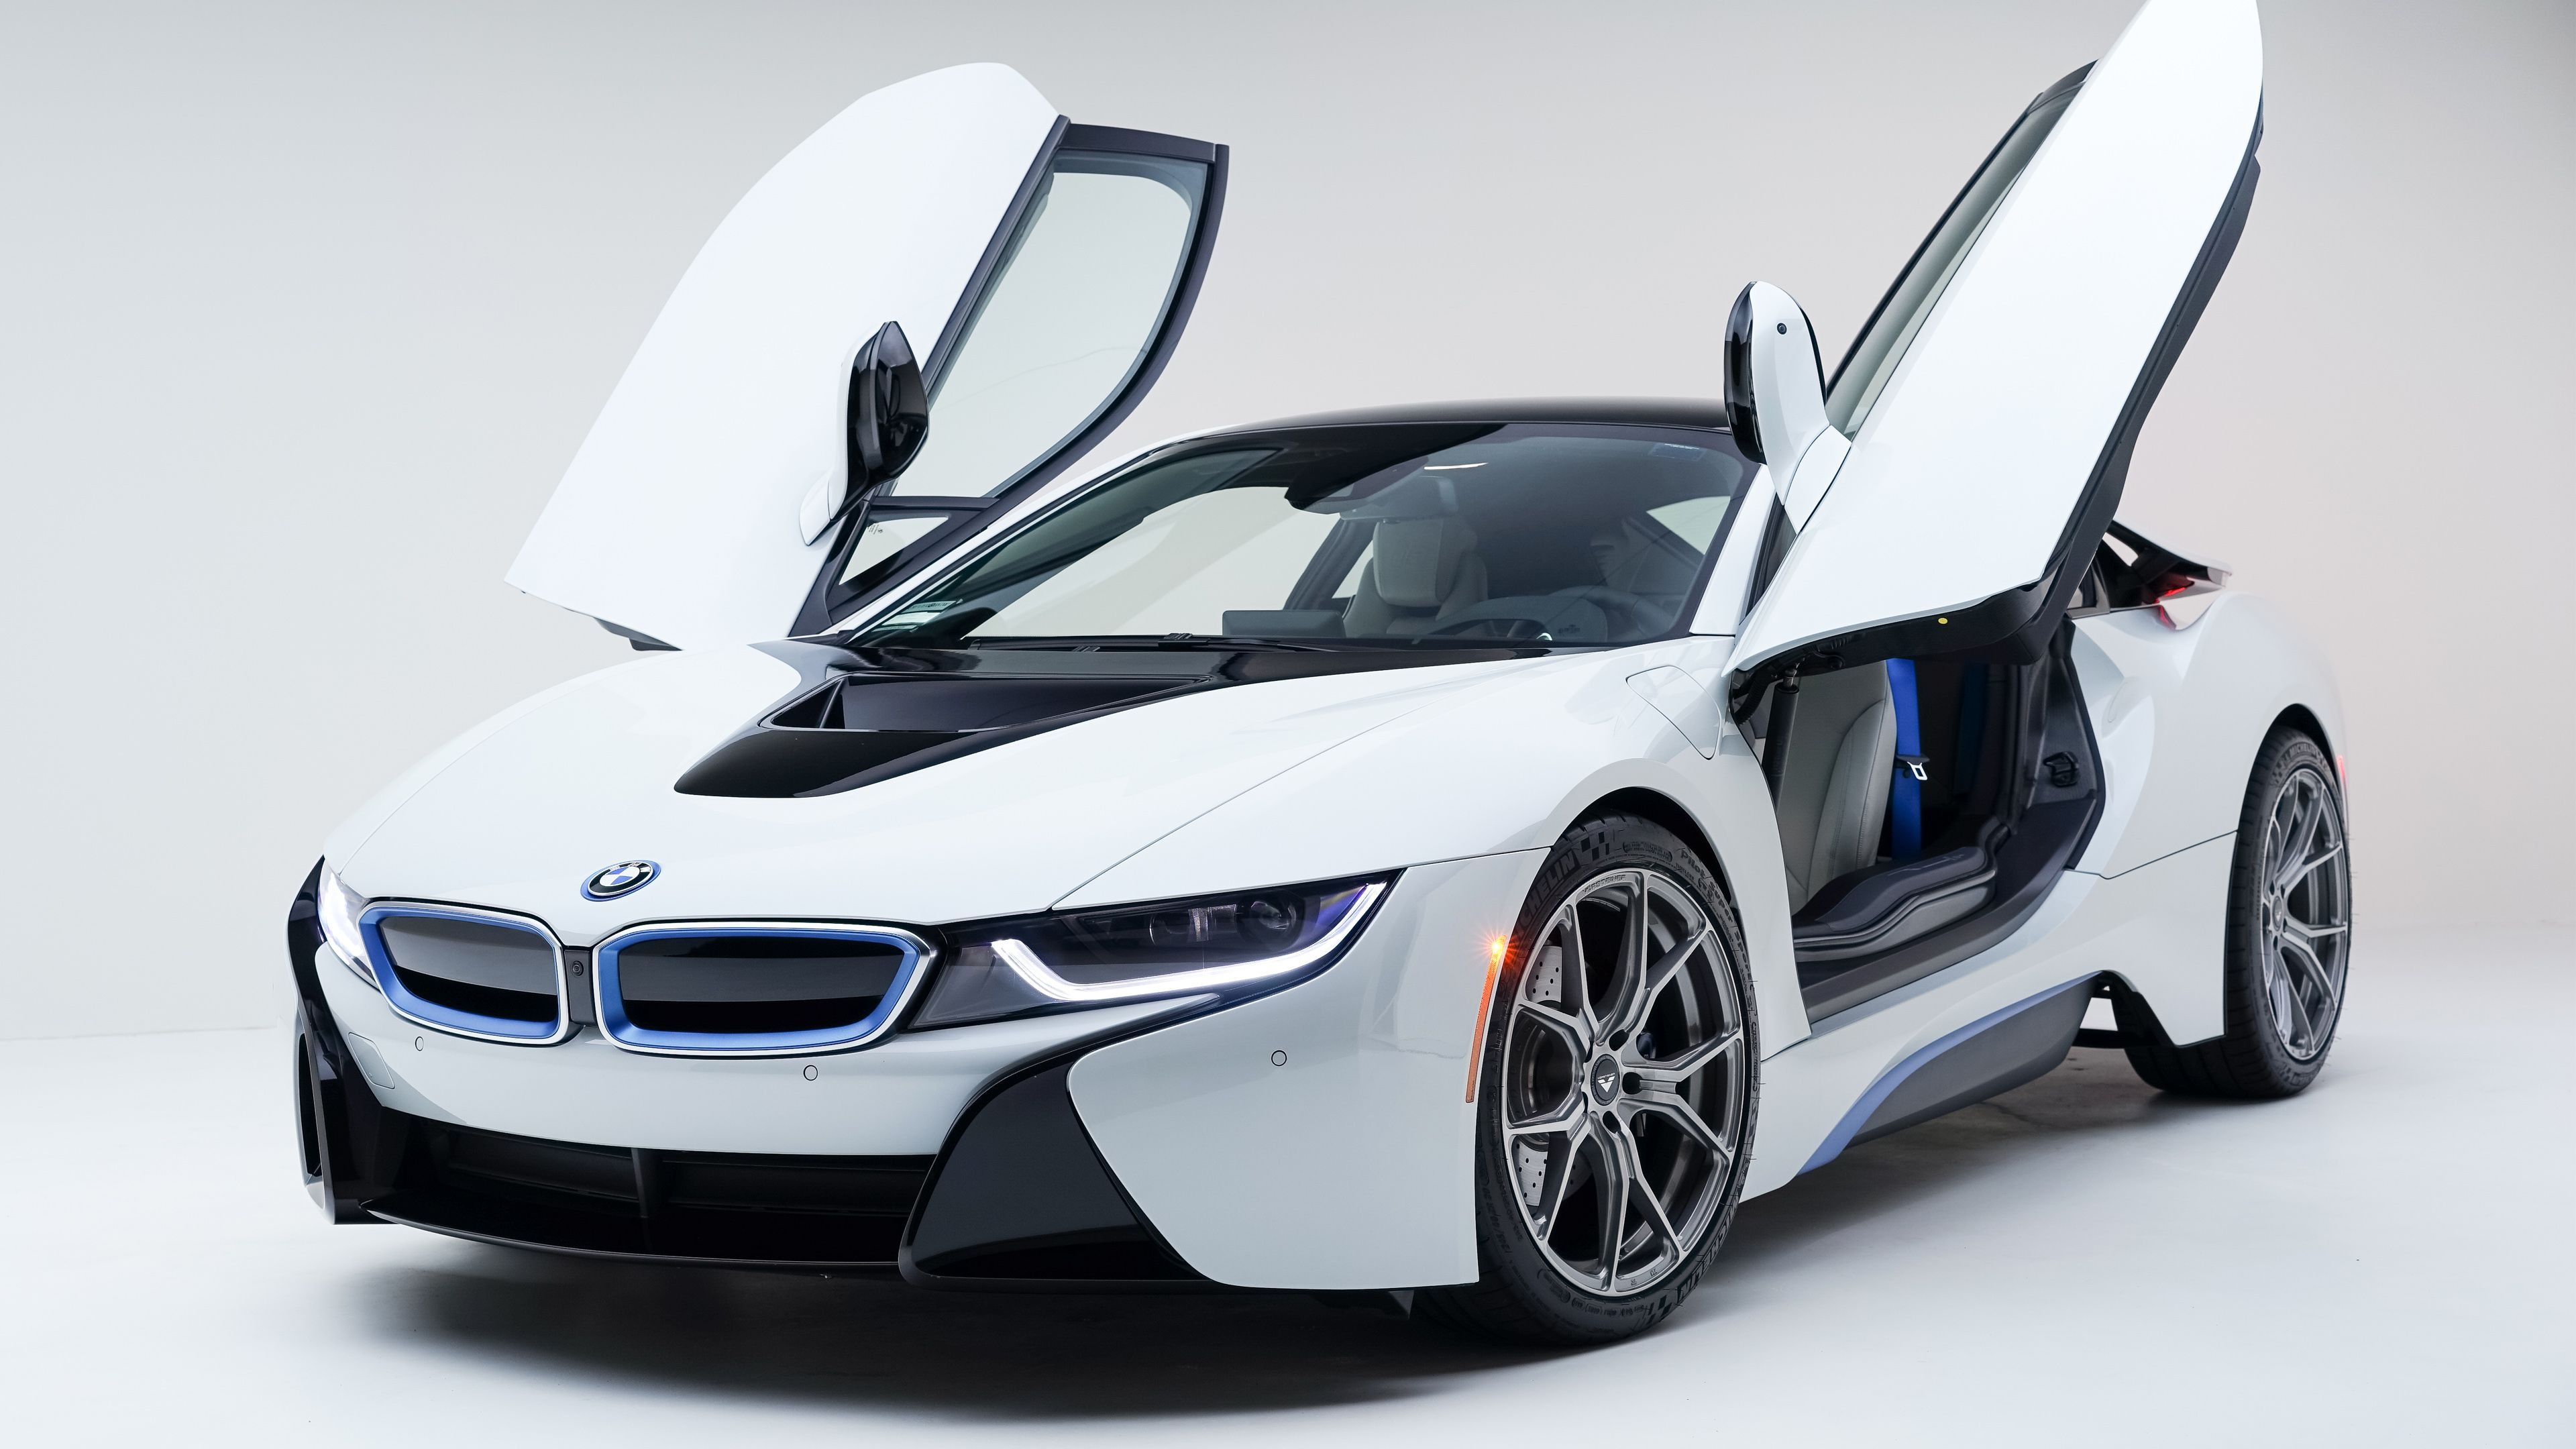 Bmw I8 4k Wallpapers Top Free Bmw I8 4k Backgrounds Wallpaperaccess